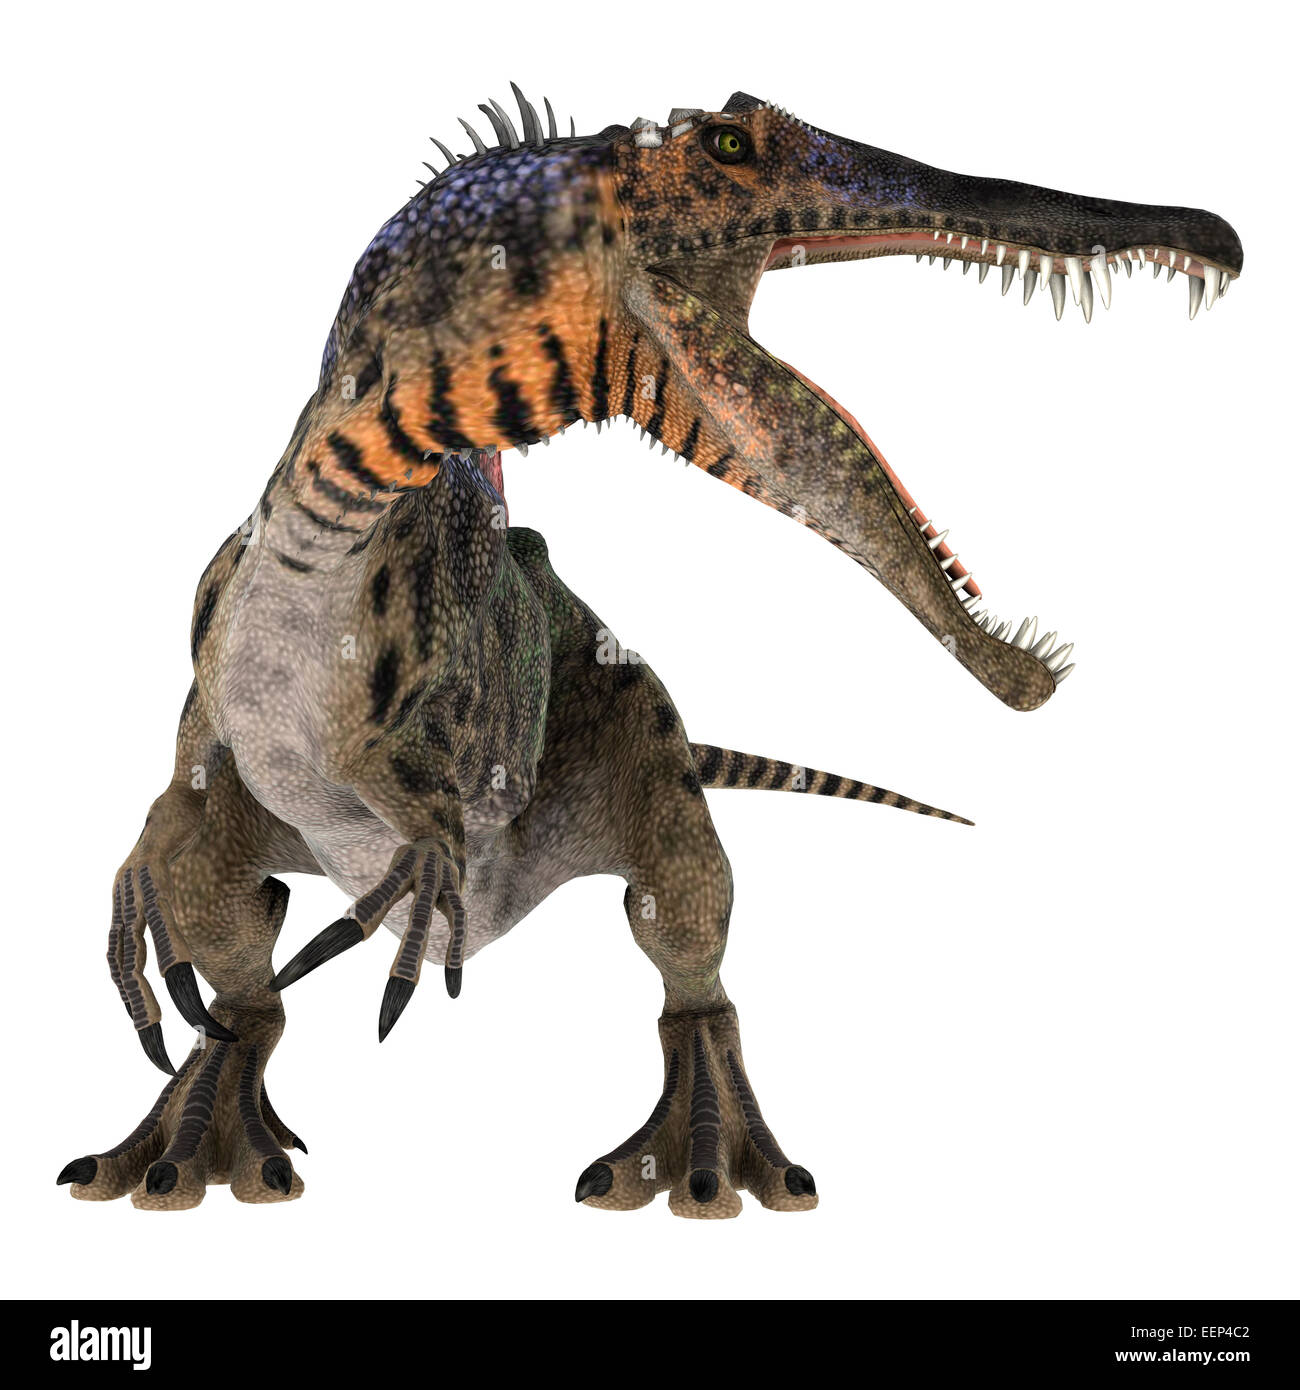 3D digital render of a curious Cretaceous dinosaur Spinosaurus or spiny lizard isolated on white background - Stock Image